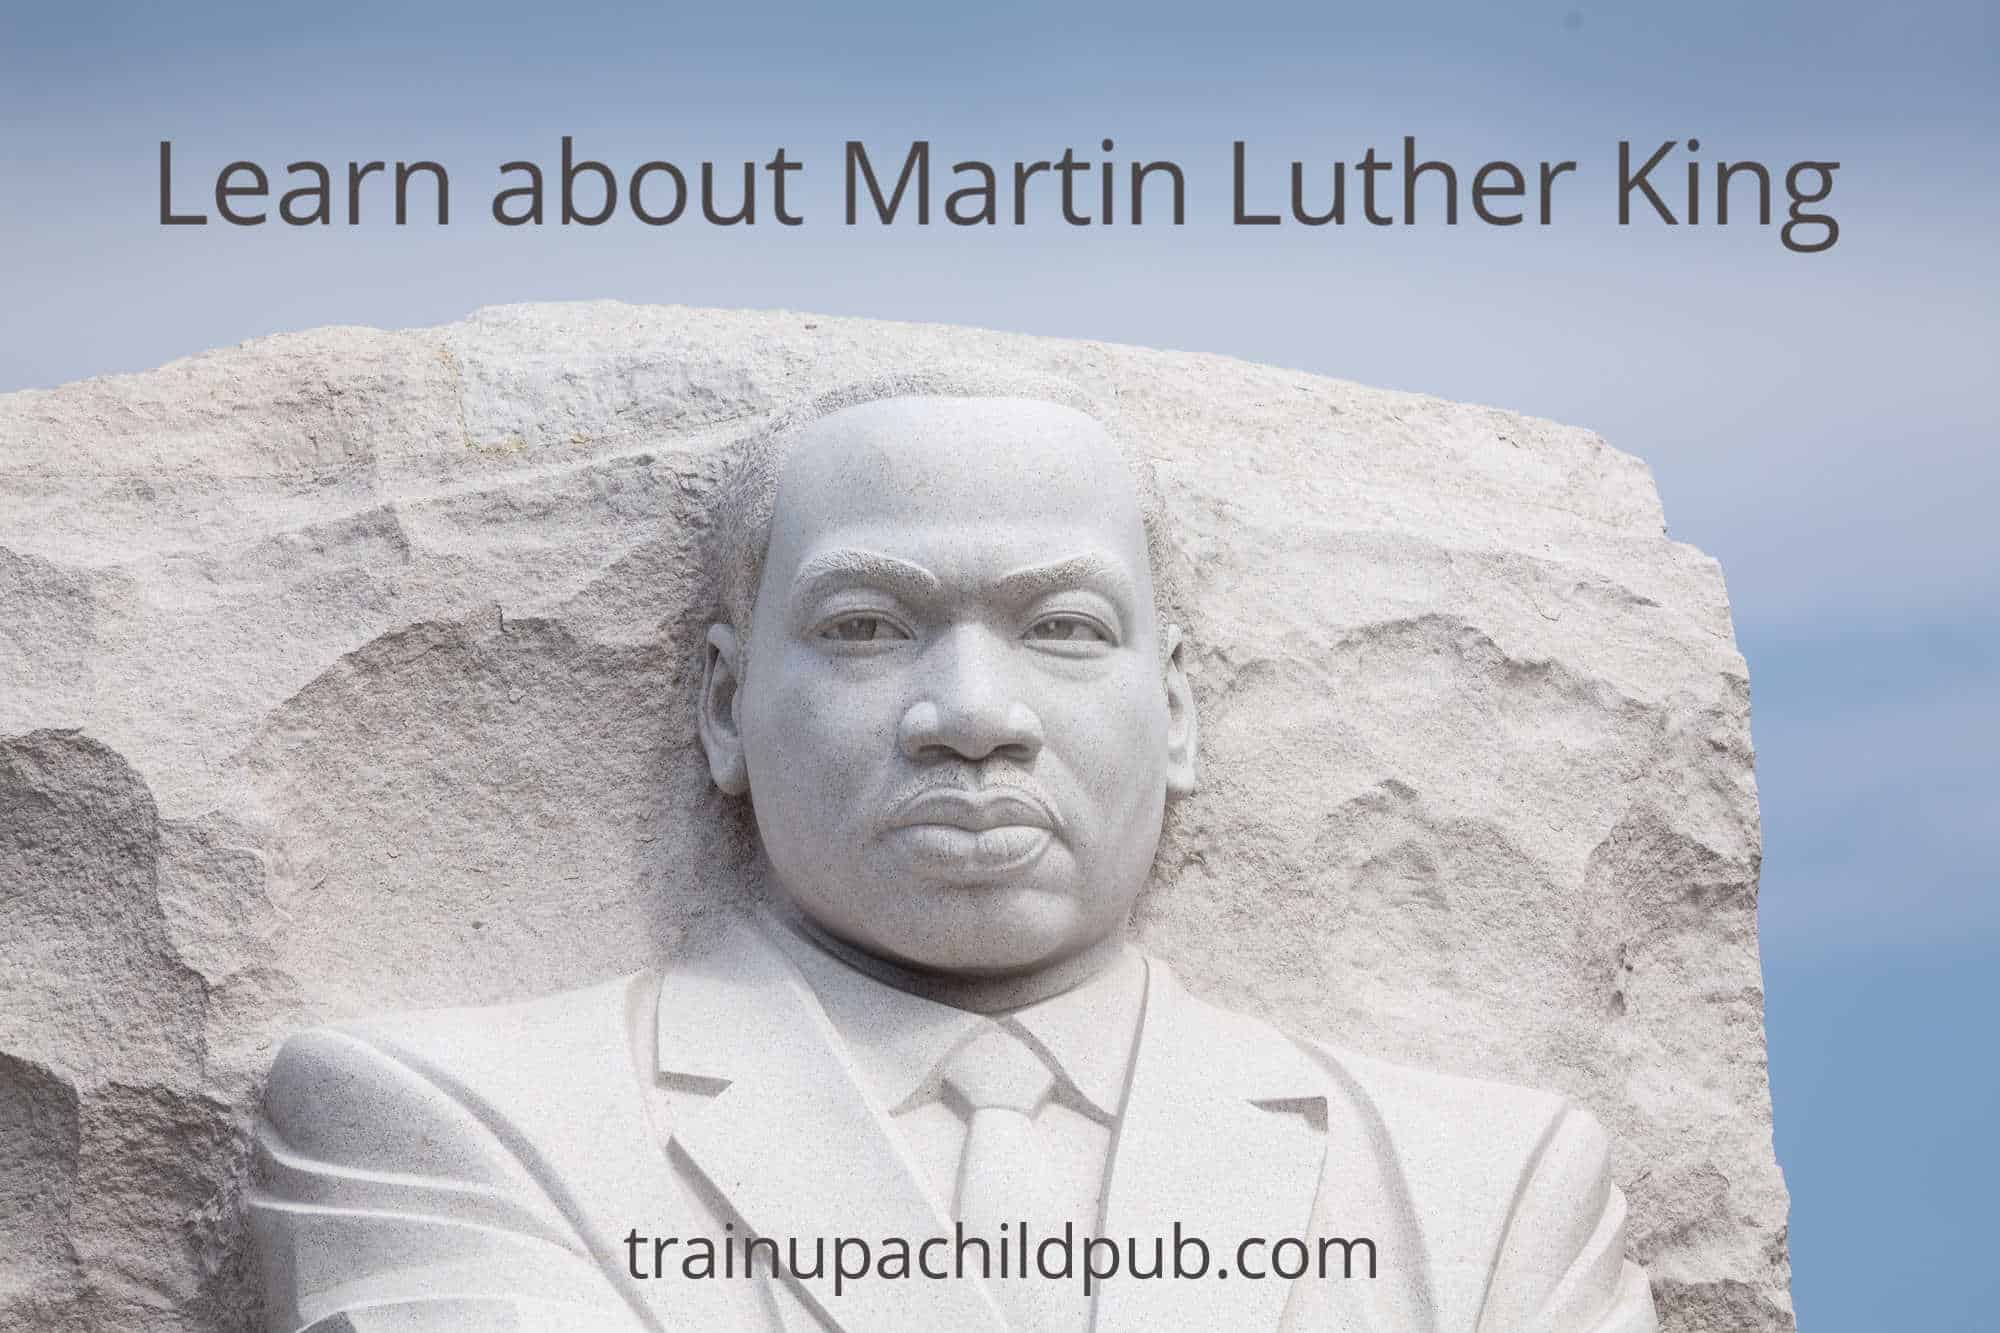 Learn about Martin Luther King